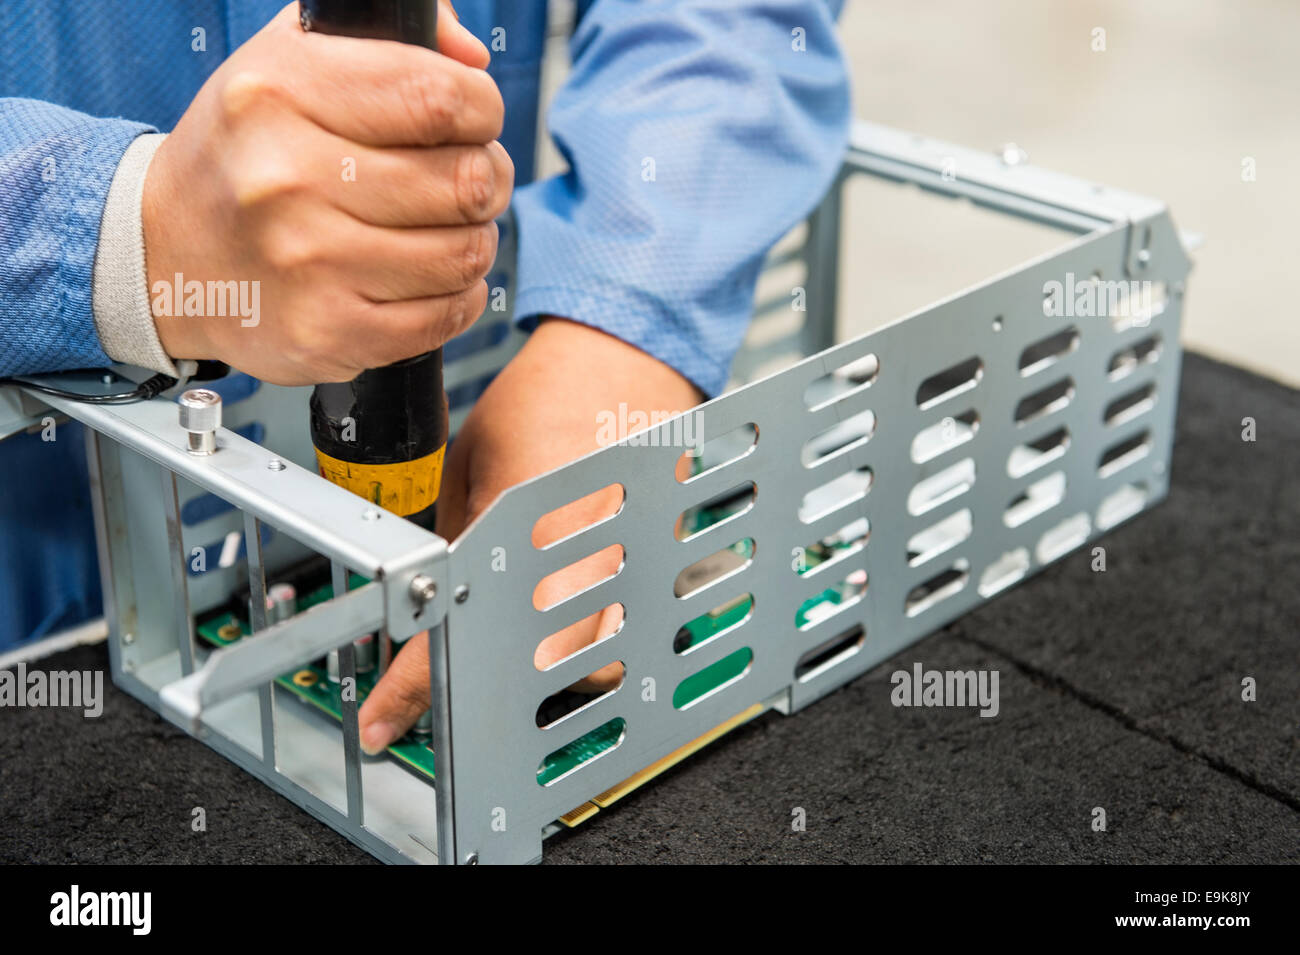 Midsection of male engineer repairing computer part in electronics industry - Stock Image